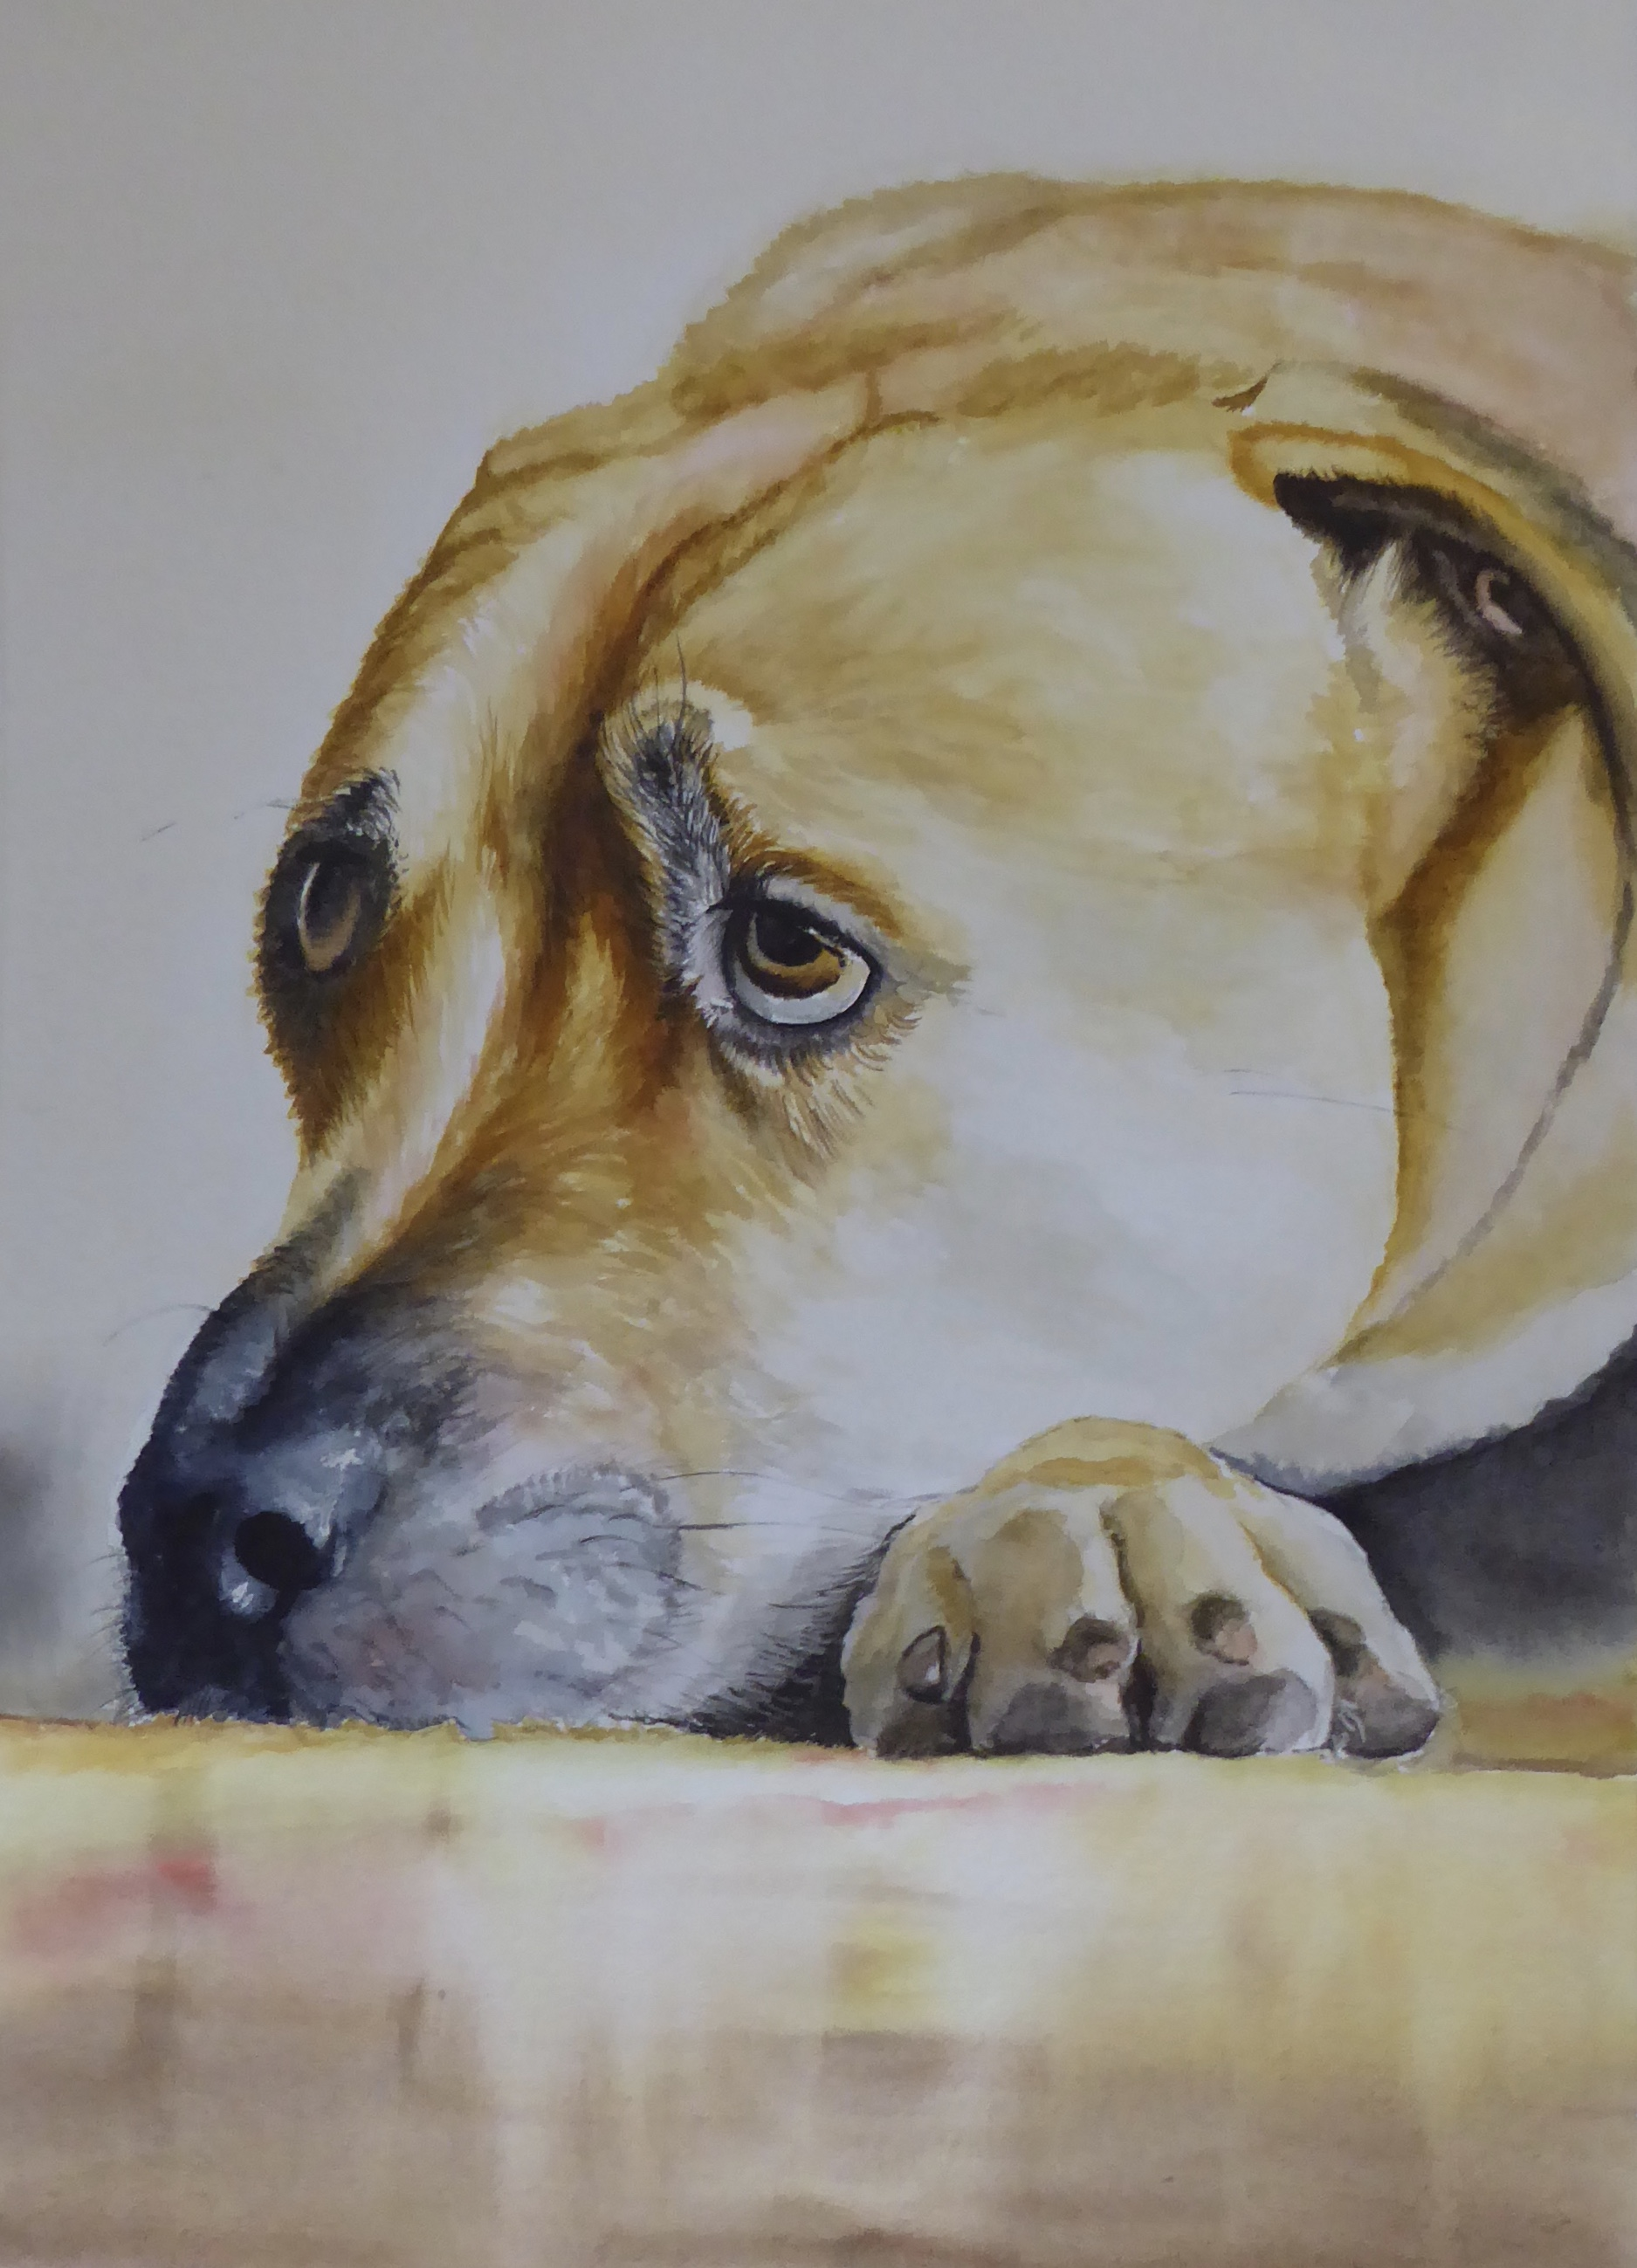 Stunning close up watercolour portrait of a dog.